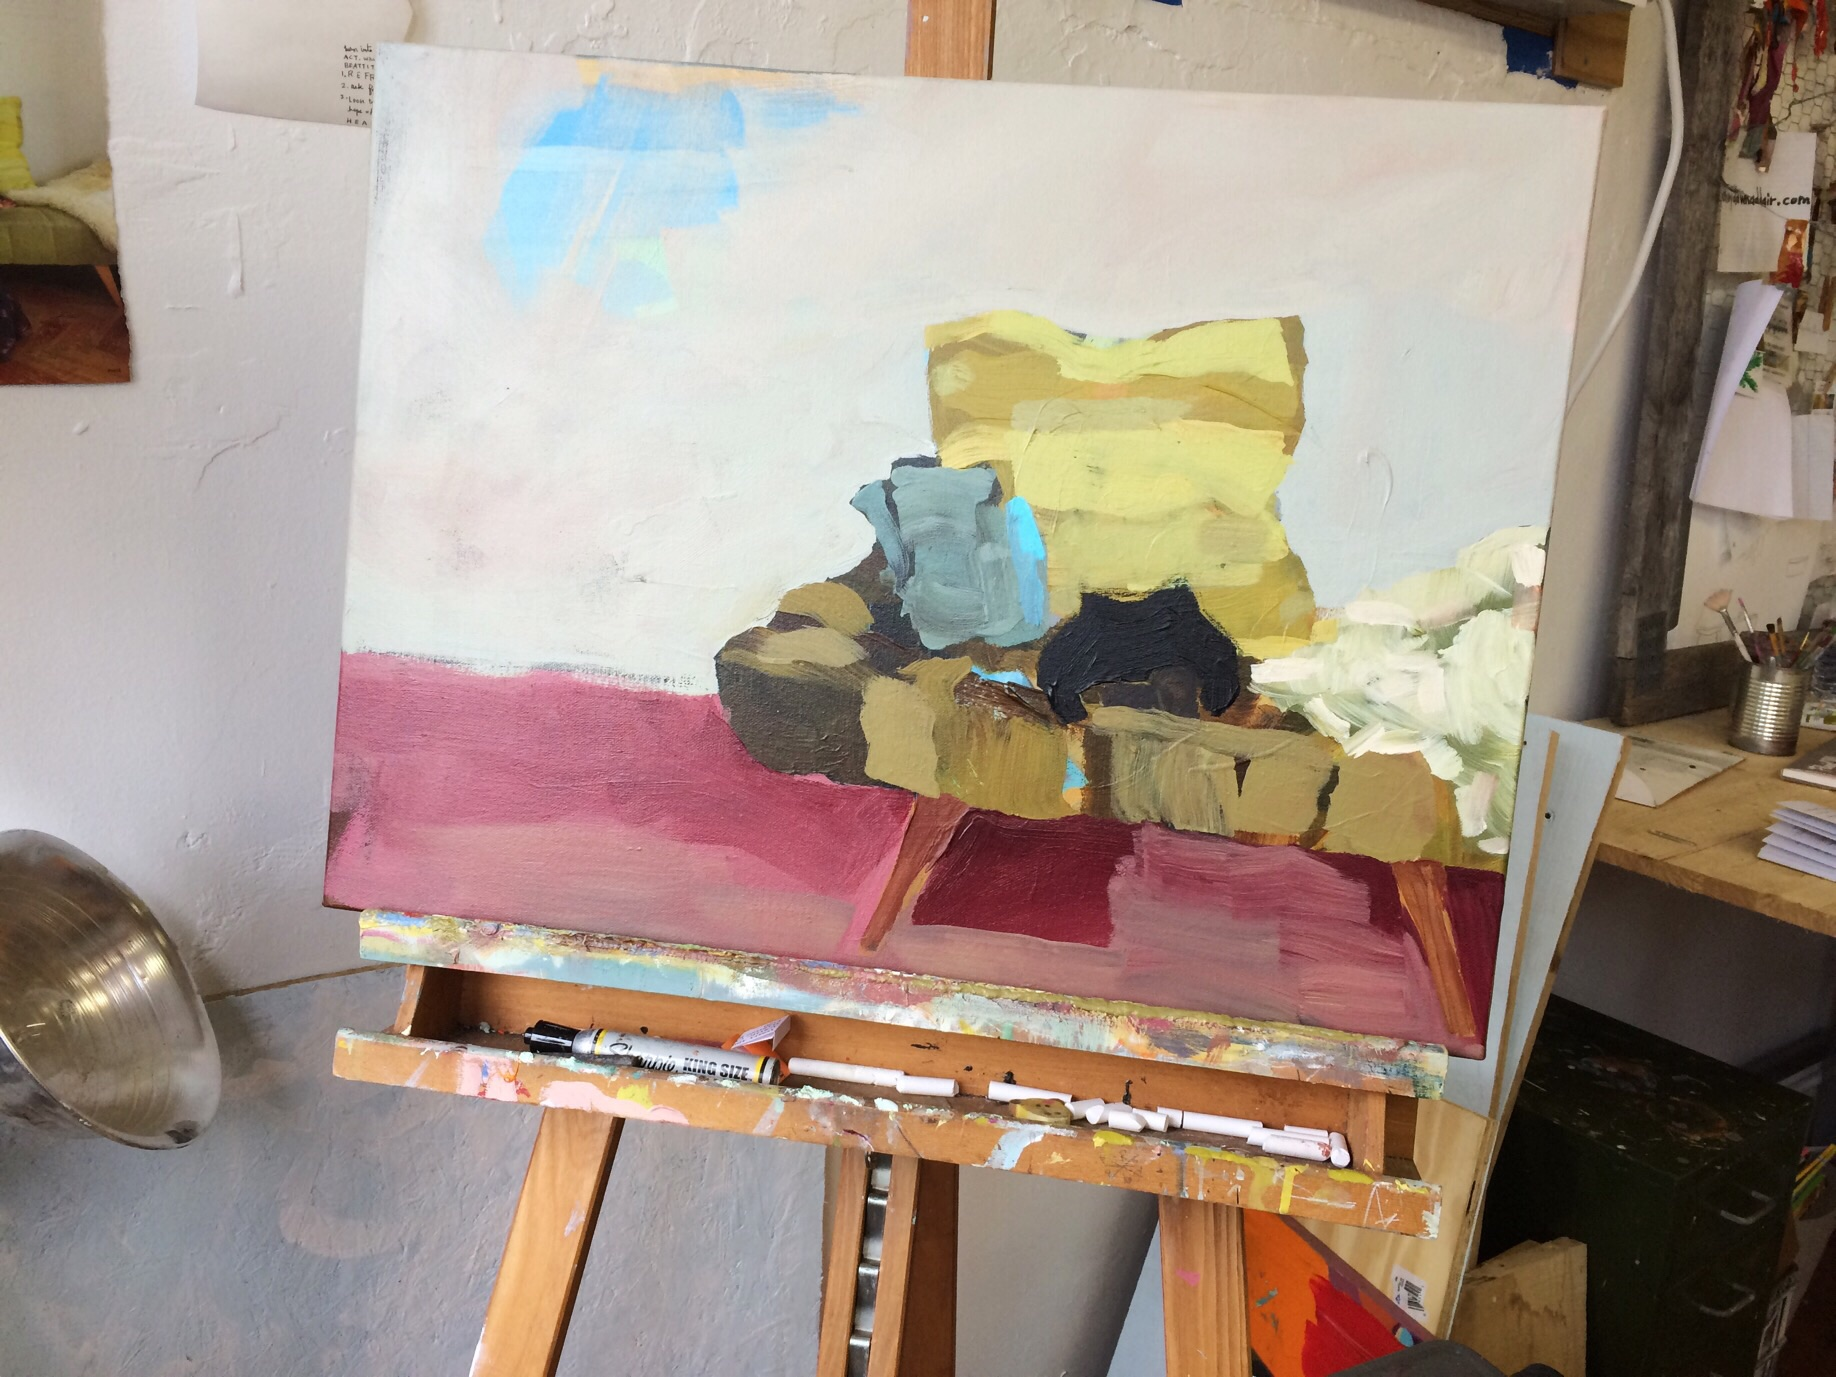 In the works.  Continuing to think through caretaking in the studio